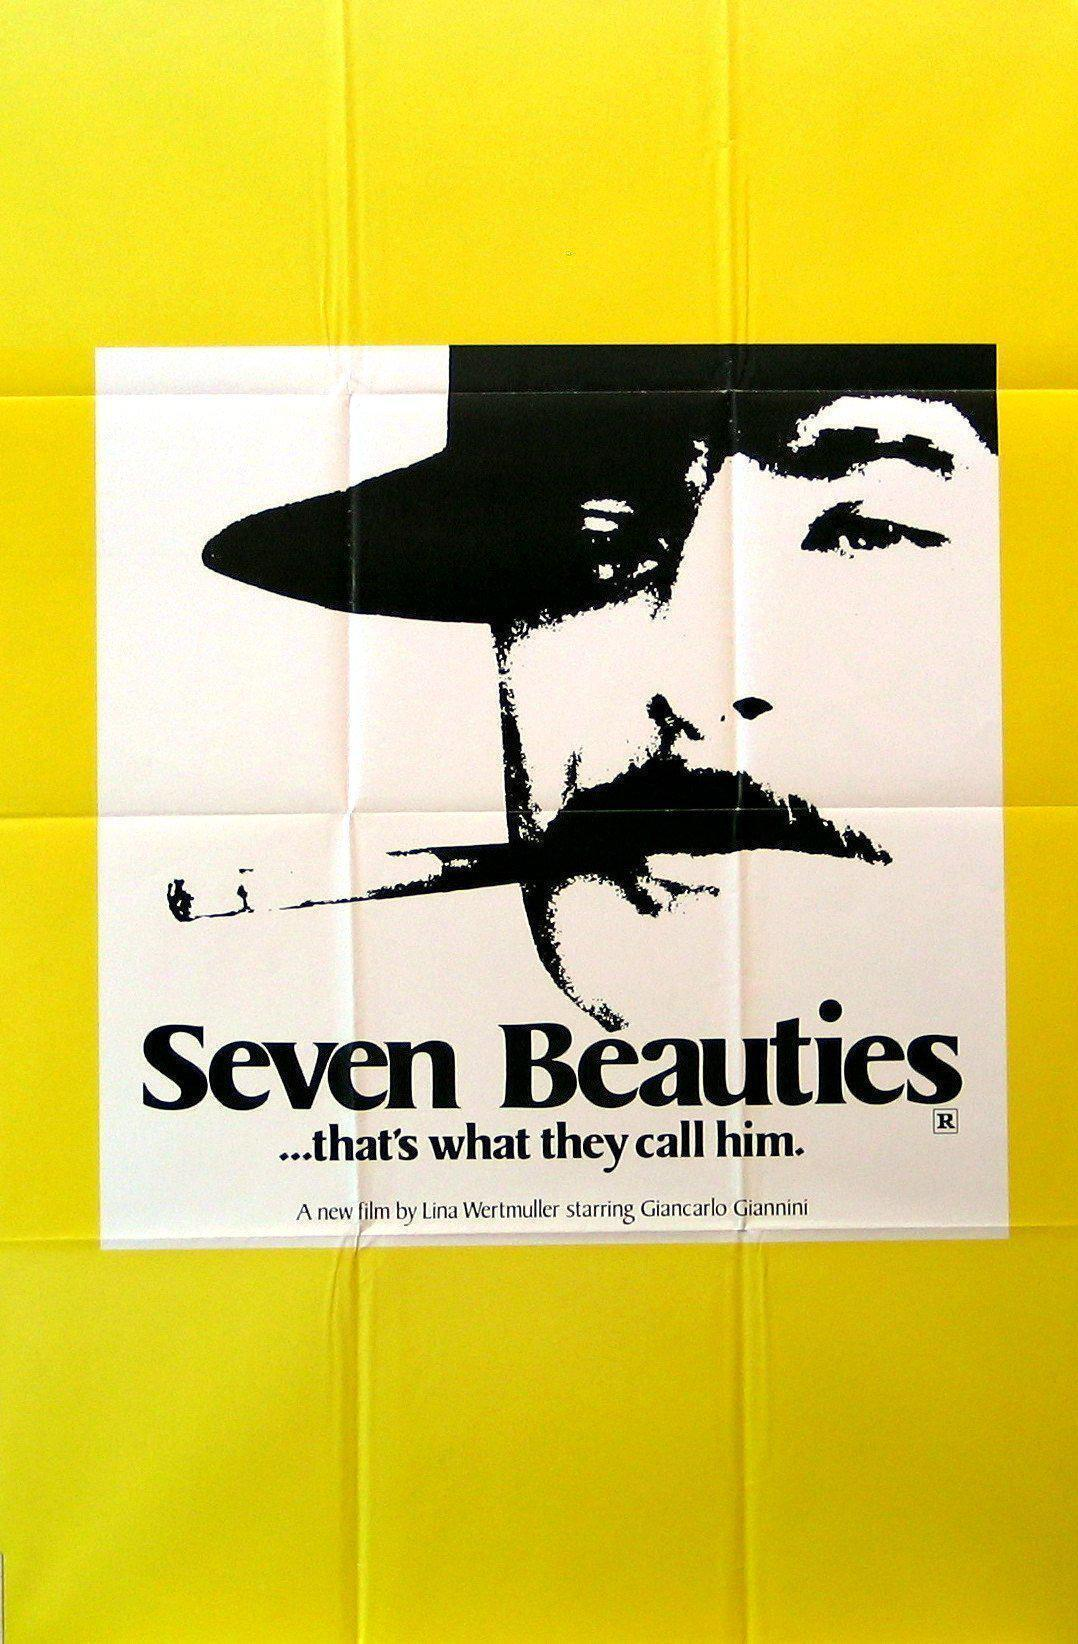 Seven Beauties 1 Sheet (27x41) Original Vintage Movie Poster